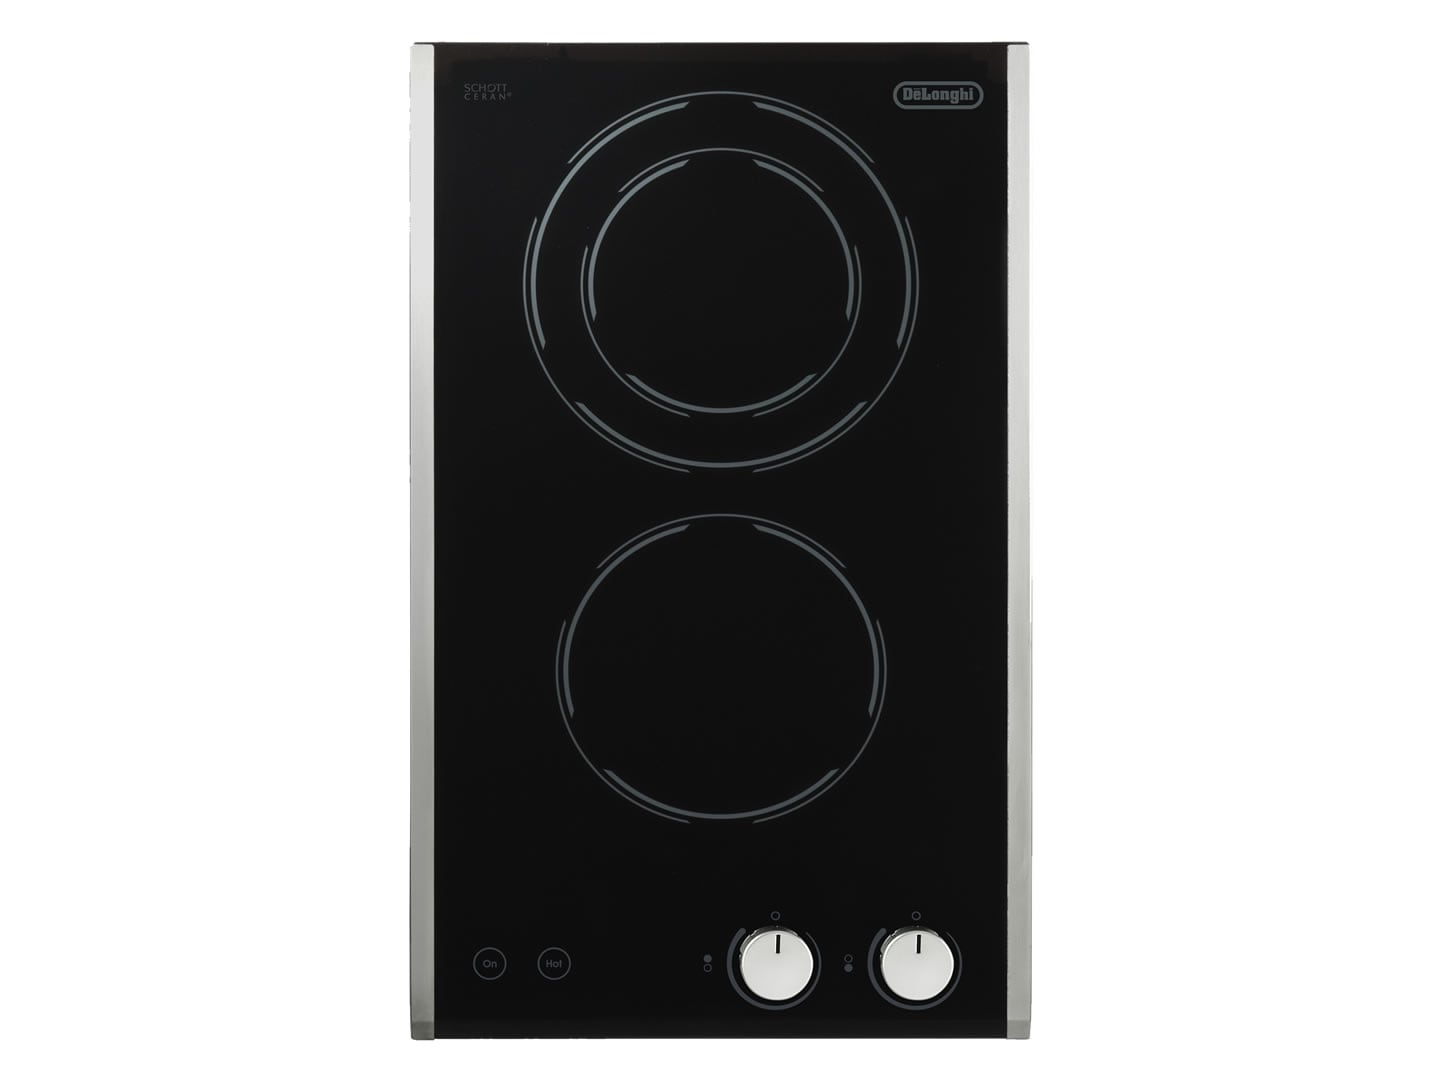 Domino Hi-Light Cooktop - 30cm DE302HB